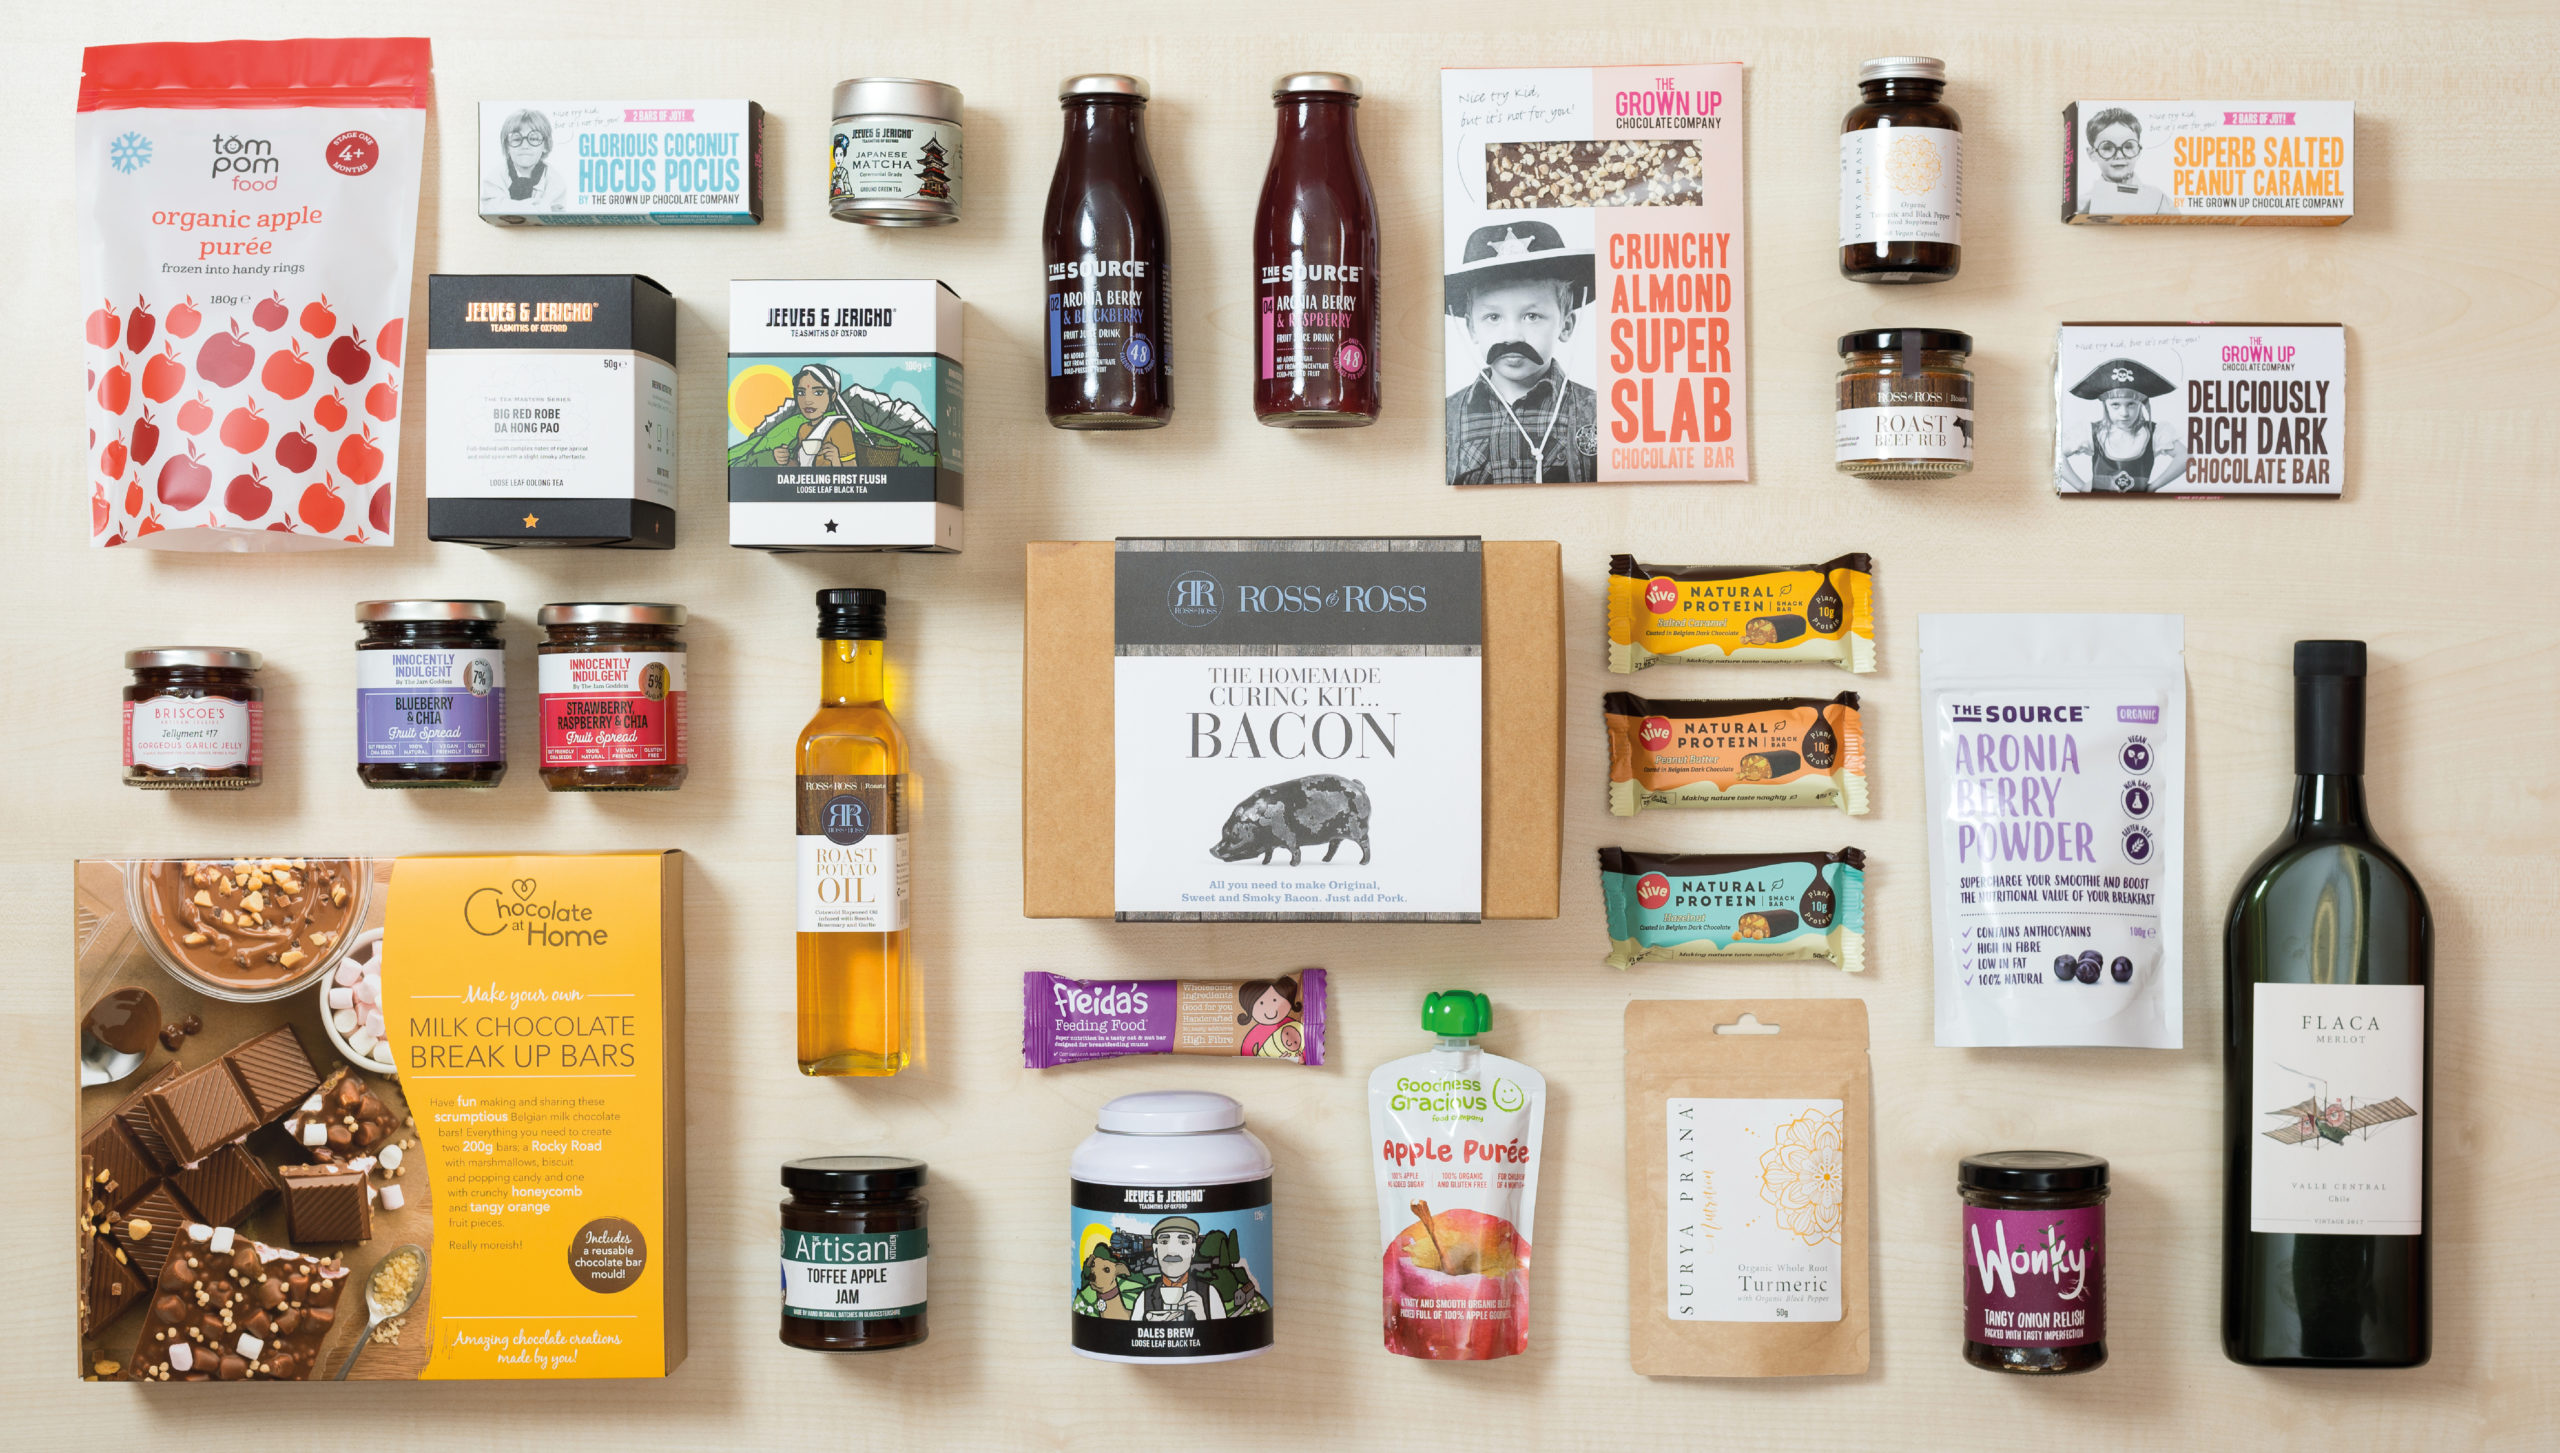 About Toast Food Brand and Packaging Design Agency